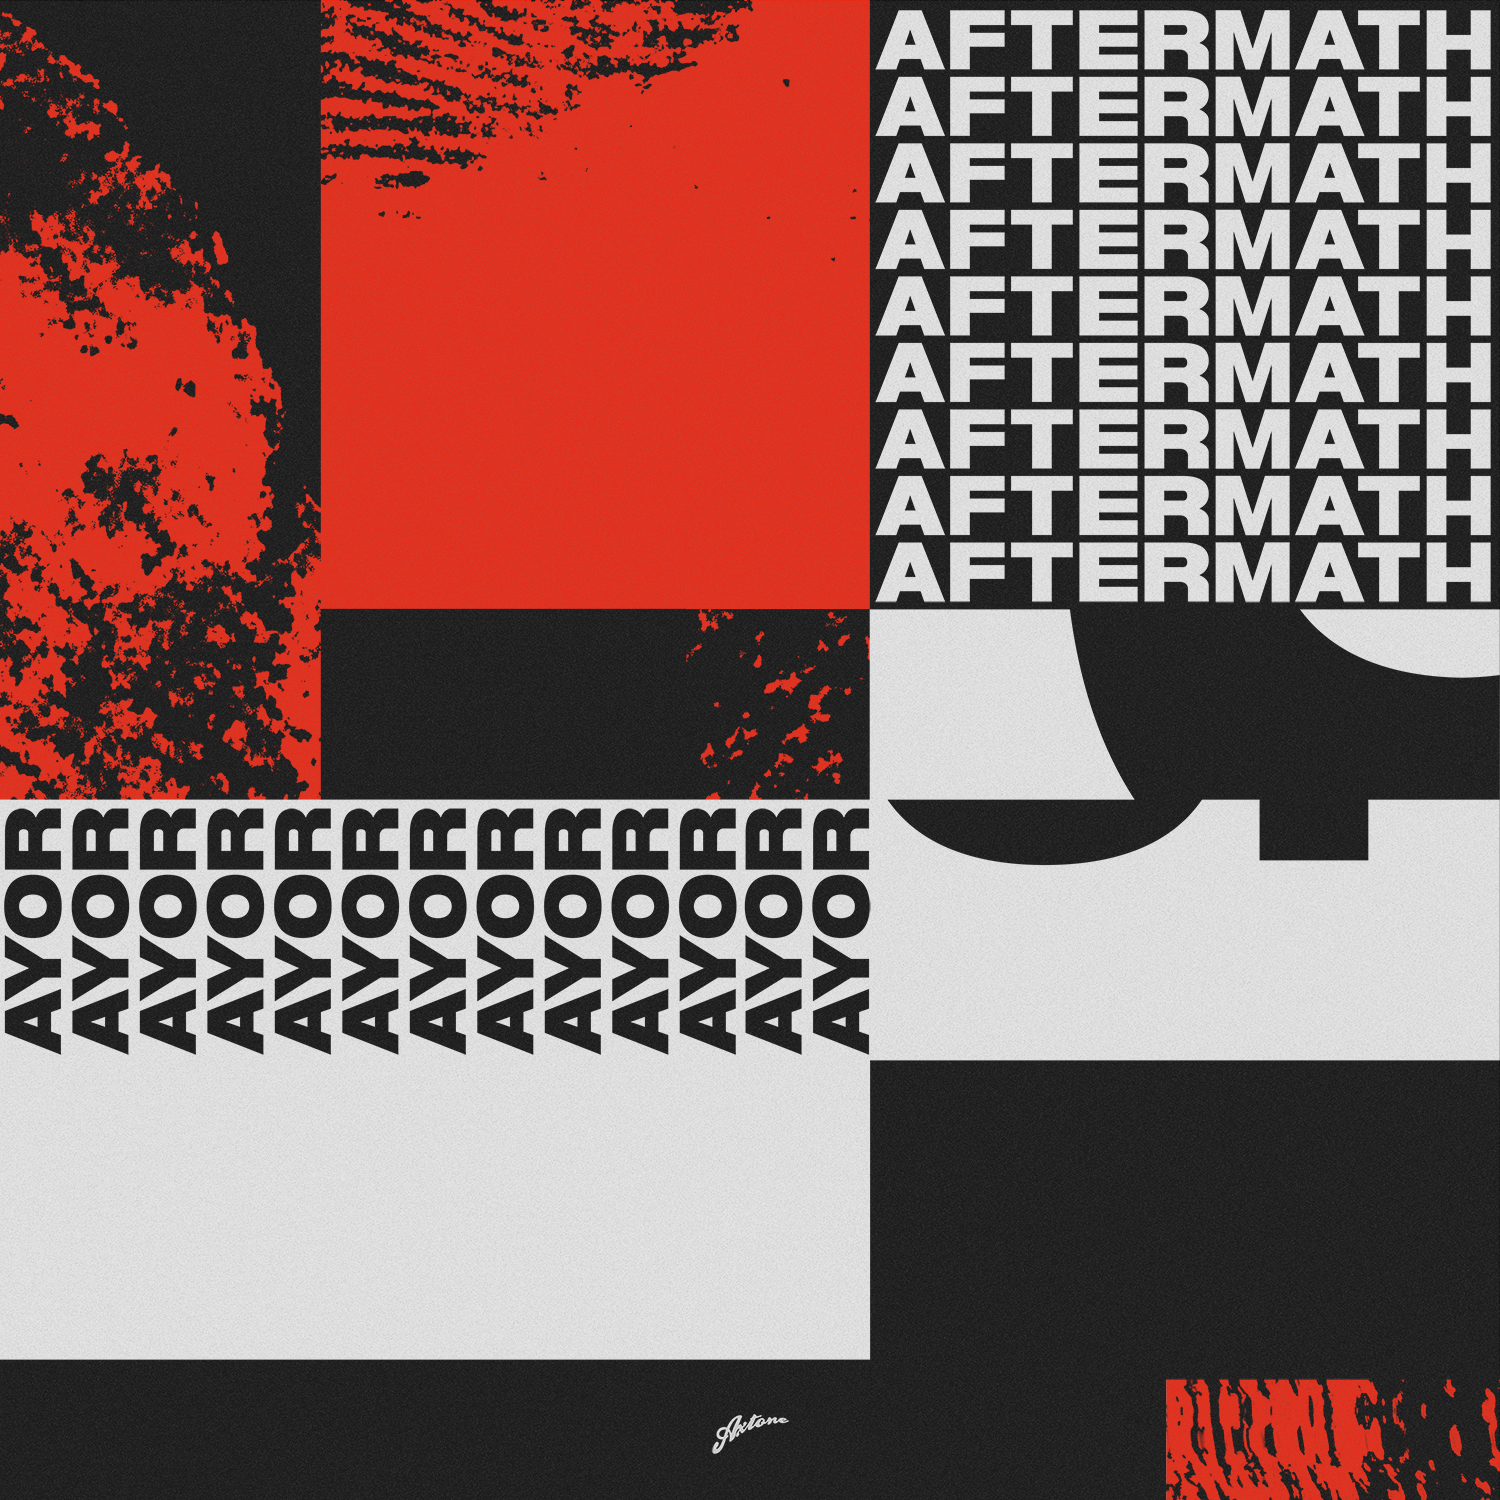 Aftermath_1500.png